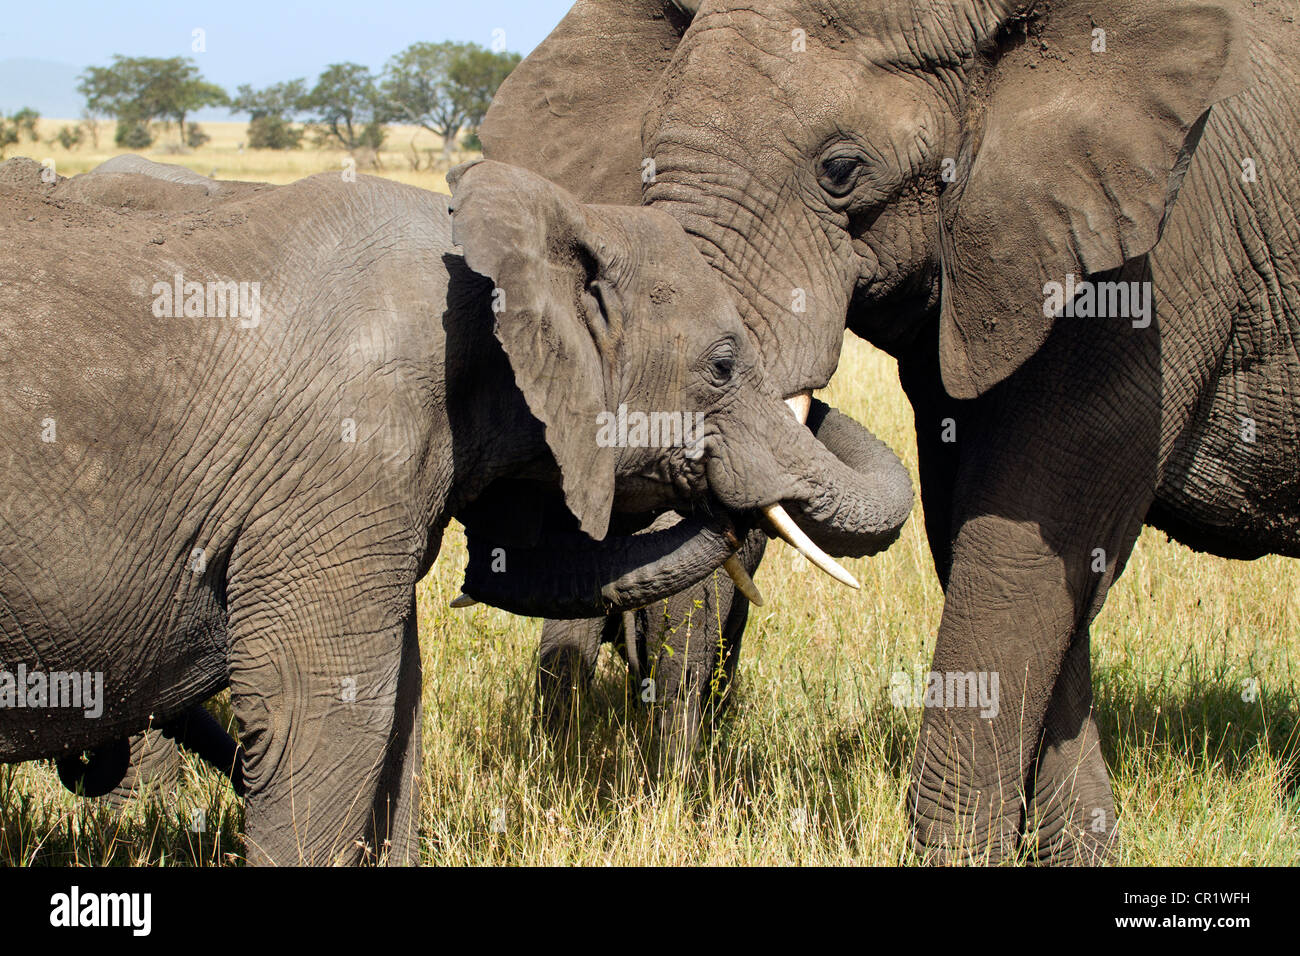 Elephants in the Serengeti in Greeting - Stock Image